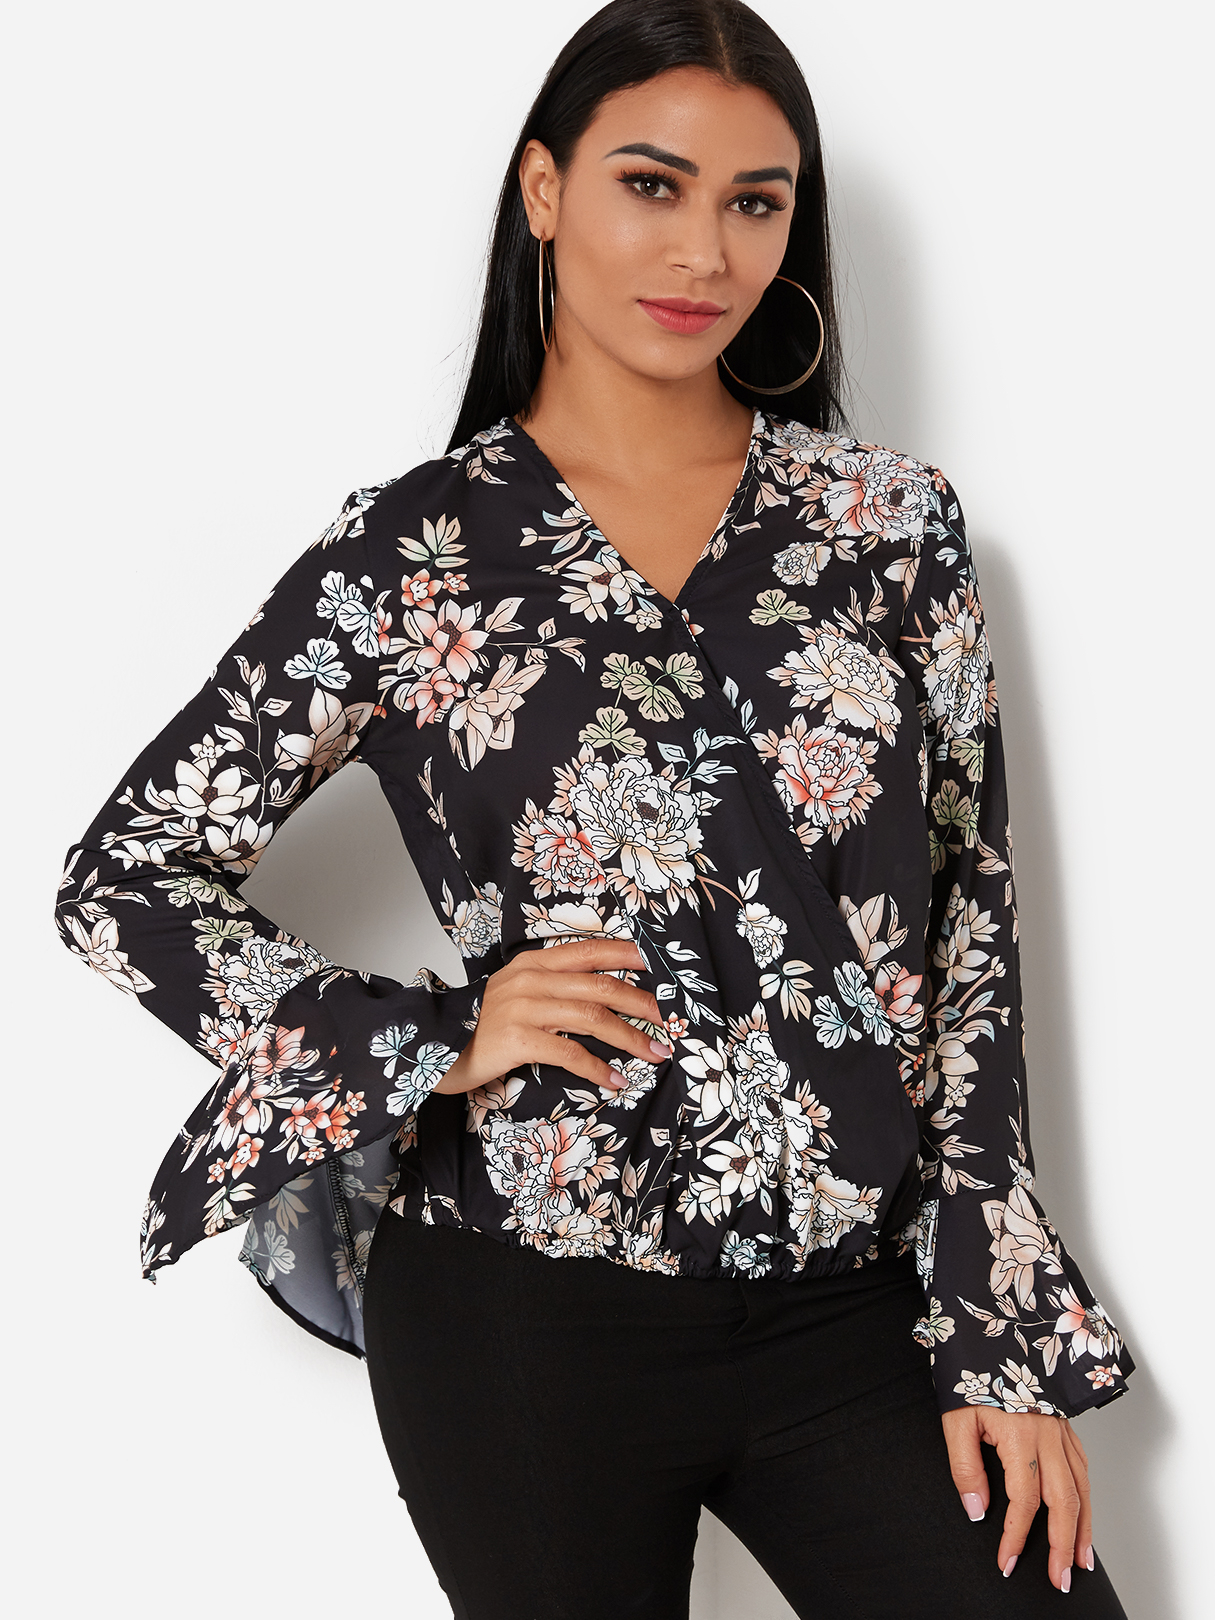 Black Random Floral Print Crossed Front V-neck Long Bell Sleeves Blouse